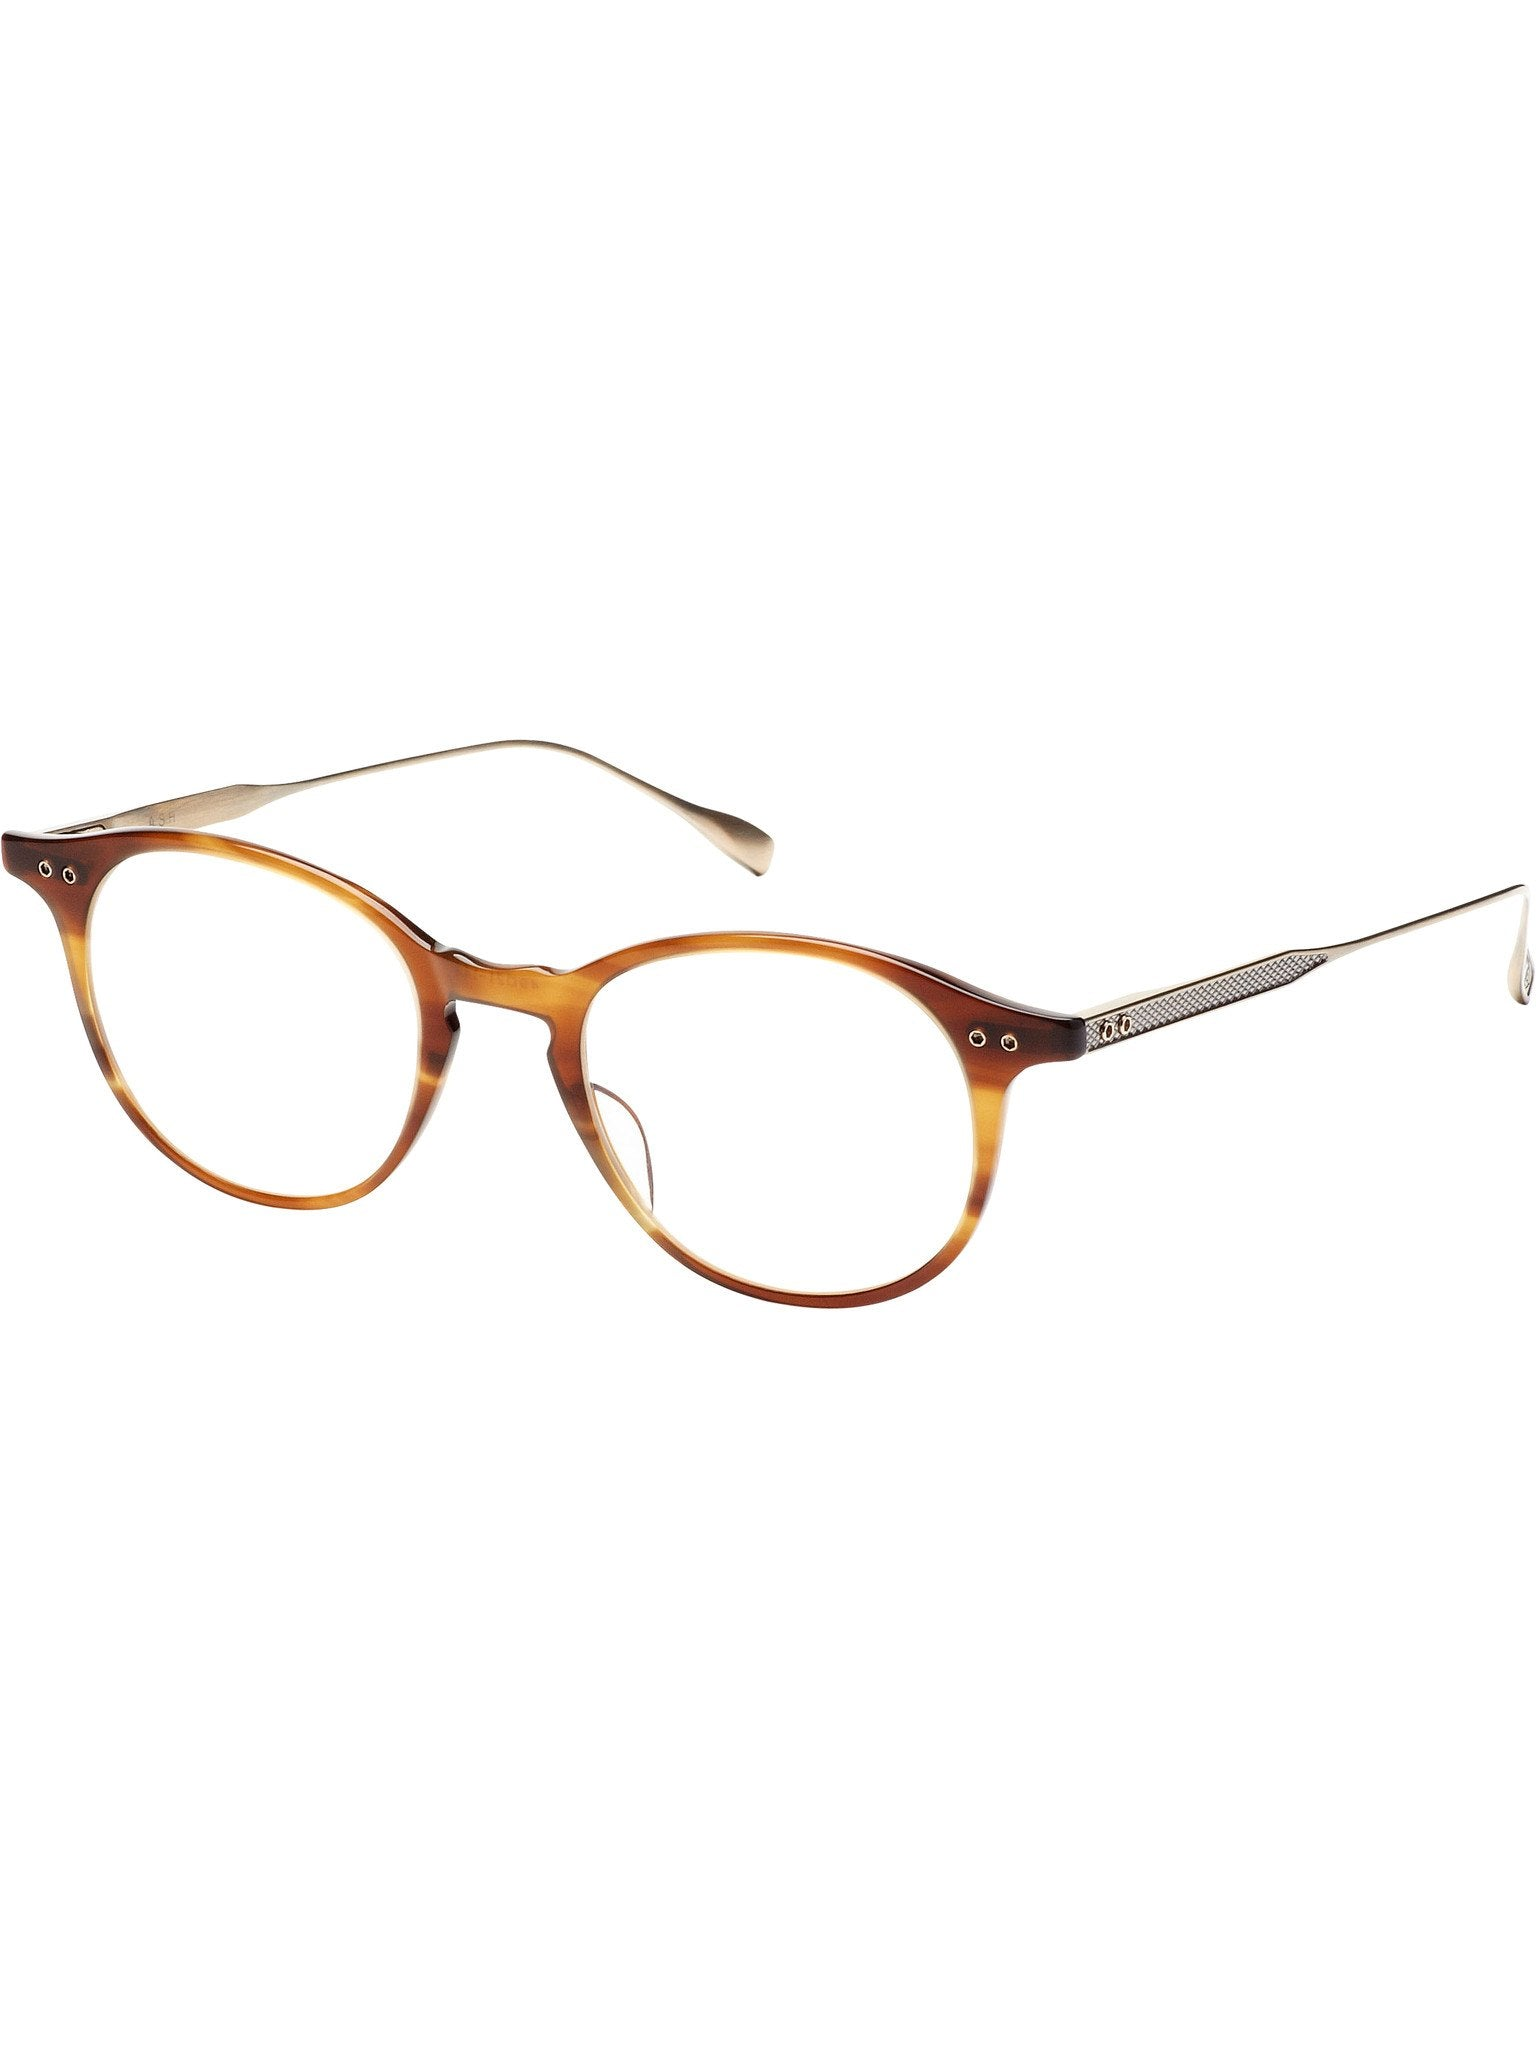 Optical Frame - Dita Ash DRX-2073-B Glasses